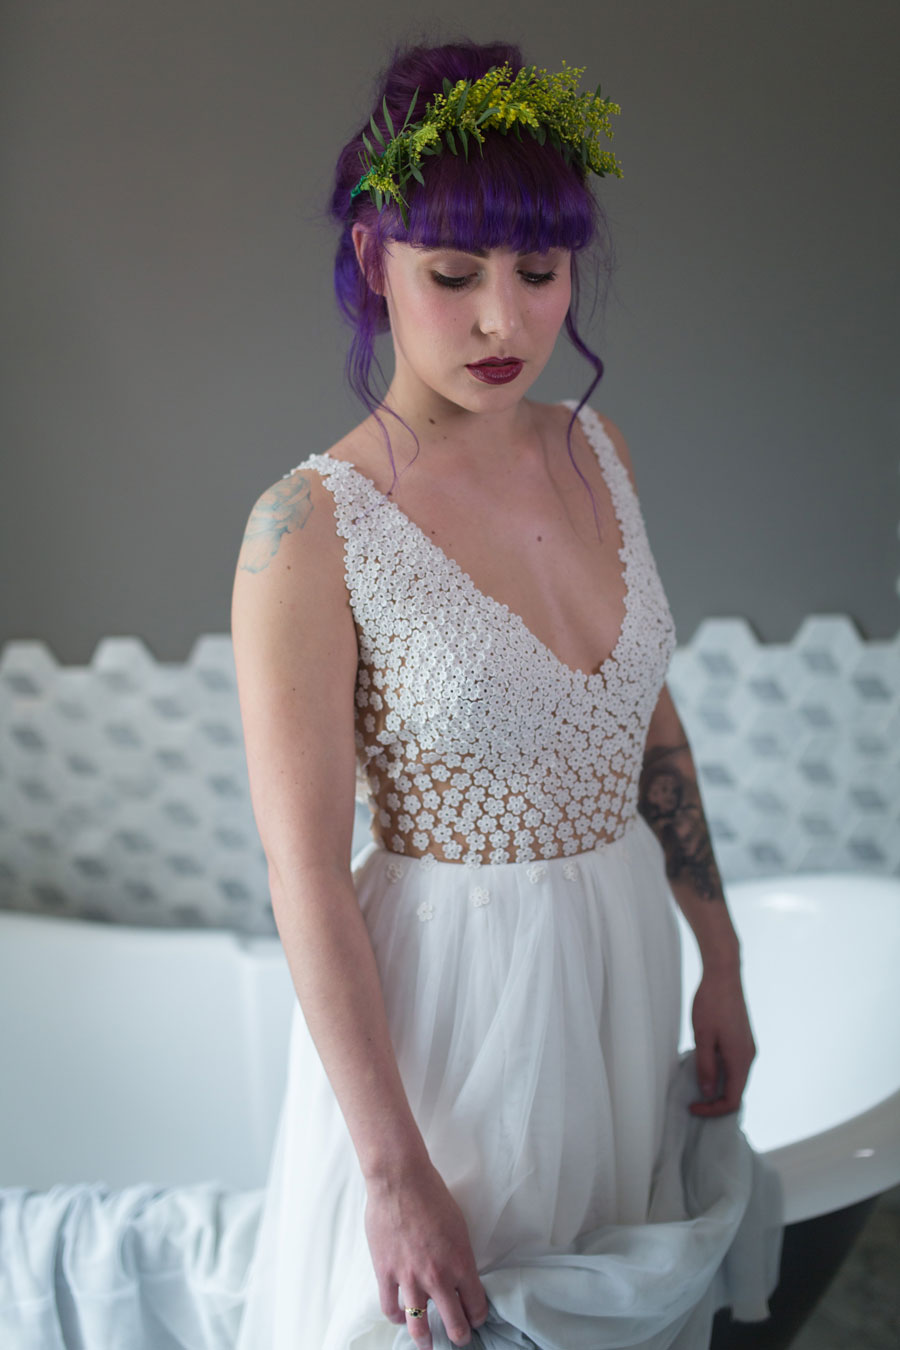 Quirky Wedding Dresses For Non-Traditional Brides- Lucy Can't Dance0002